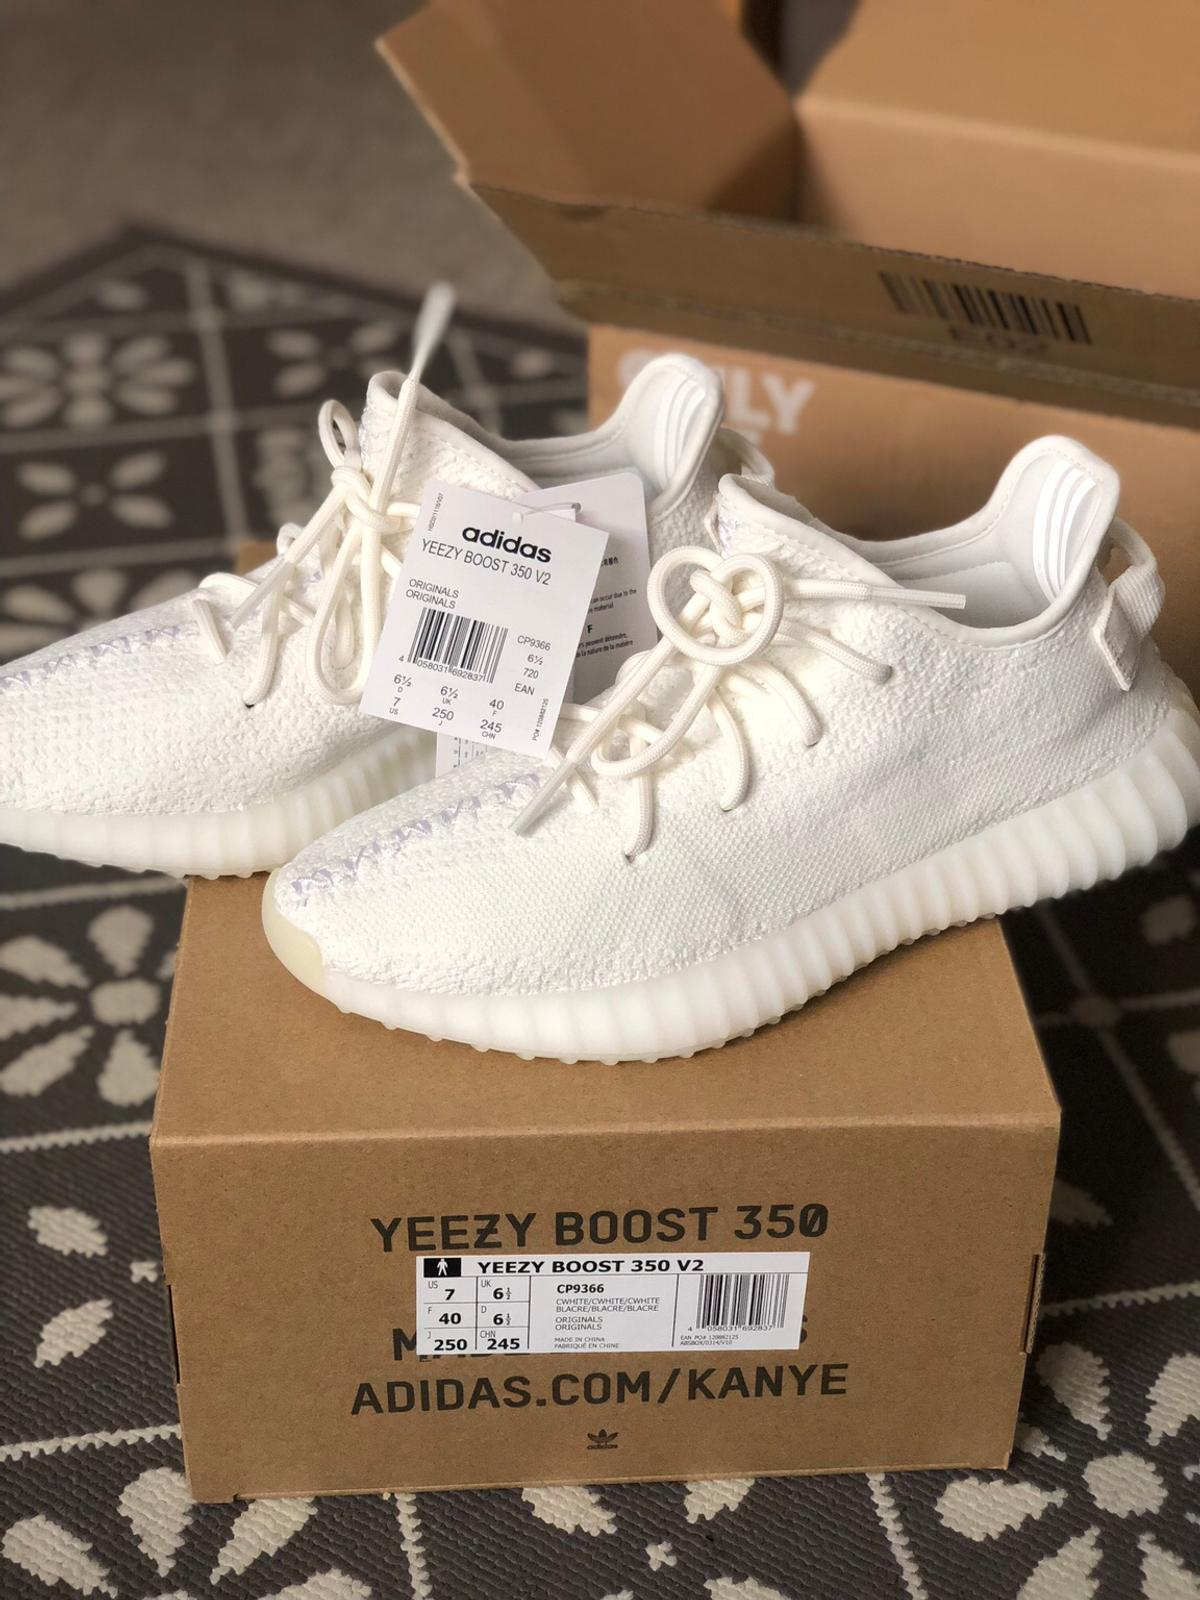 wholesale dealer 14b65 0d977 Yeezy Boost 350 V2 Triple White Size 6